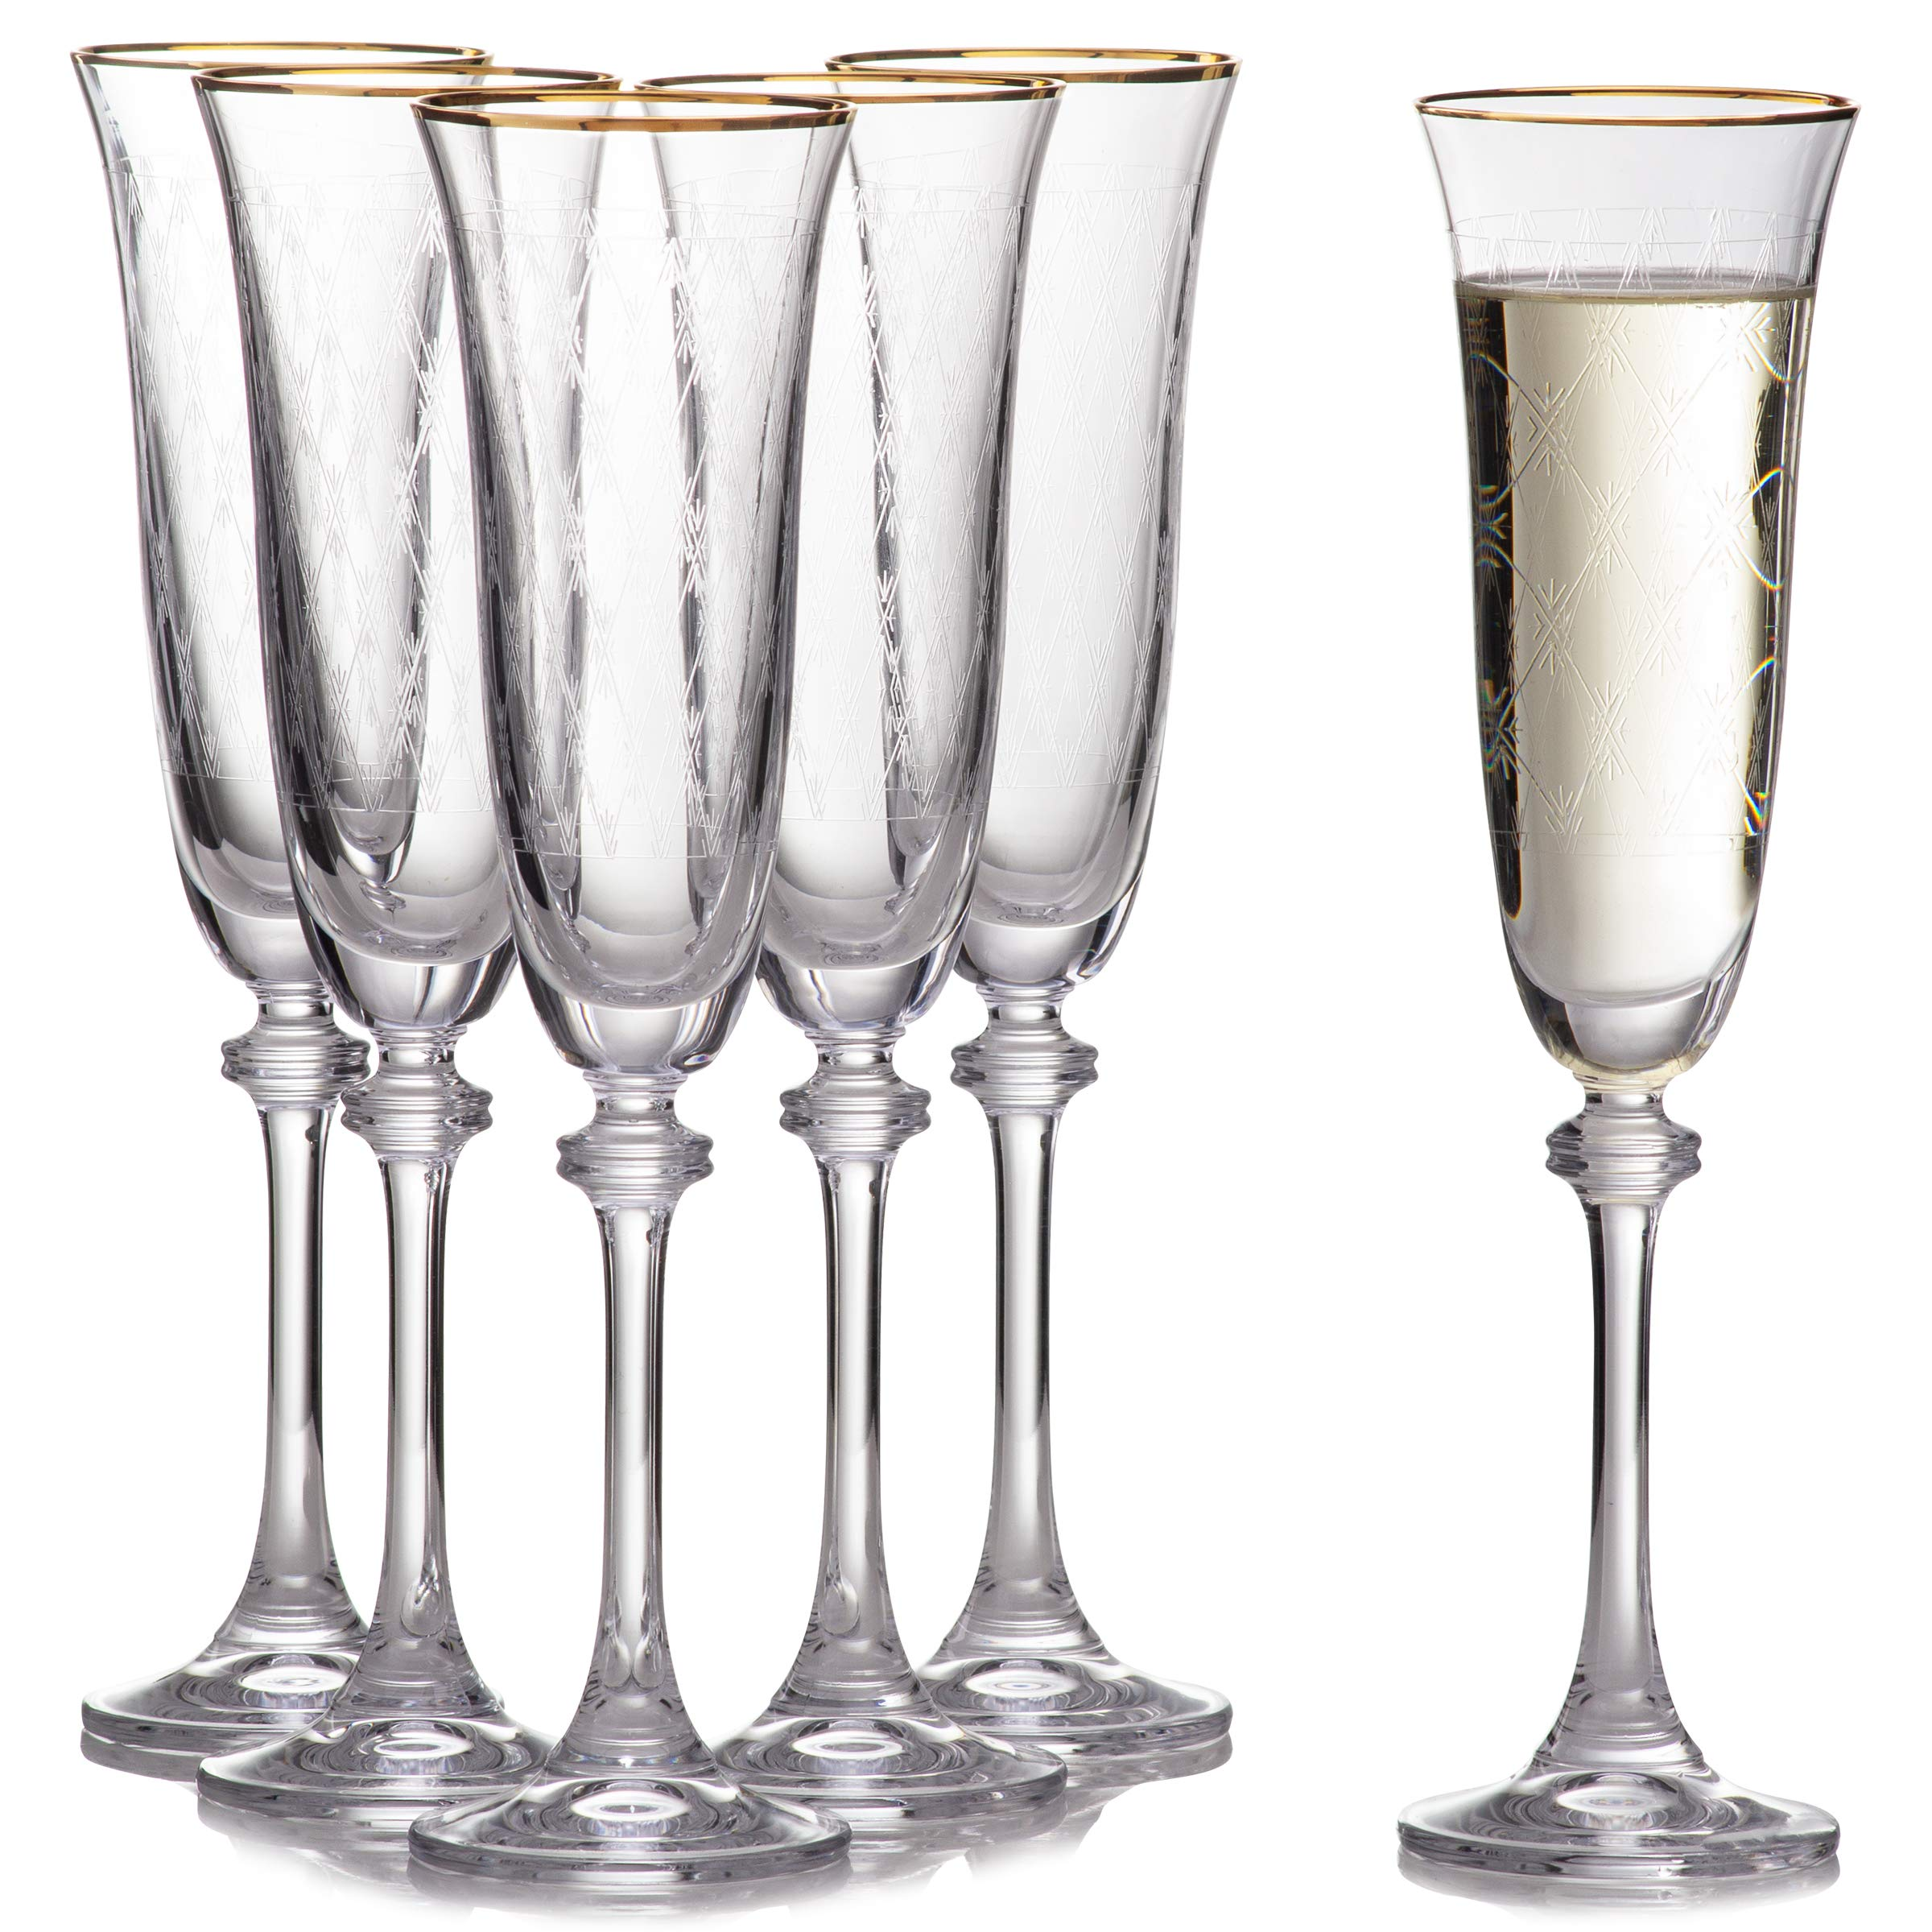 Gold Rimmed & Diamond Decor Champagne Flute Set (6 pack), Chip Resistant & Crystal Clear Glassware,  100% Lead-Free - European Quality & Luxury Collection, 6.42 Ounces